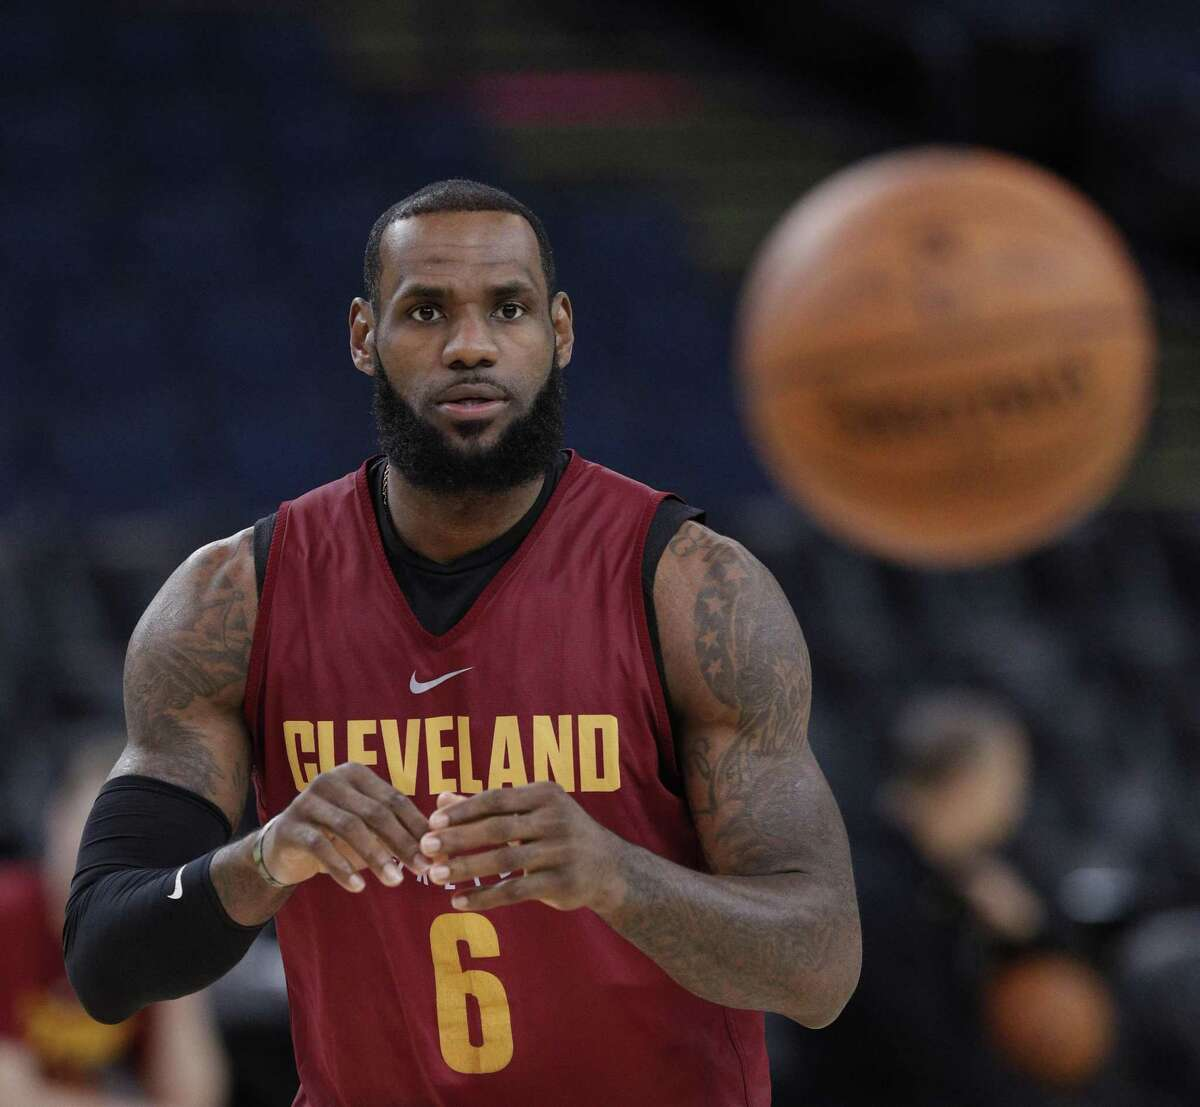 LeBron James (23) waits for a pass during an off day practice and media day at Oracle Arena before the Golden State Warriors play the Cleveland Cavaliers in Game 1 of the NBA Finals in Oakland, Calif, on Wednesday, May 30, 2018.